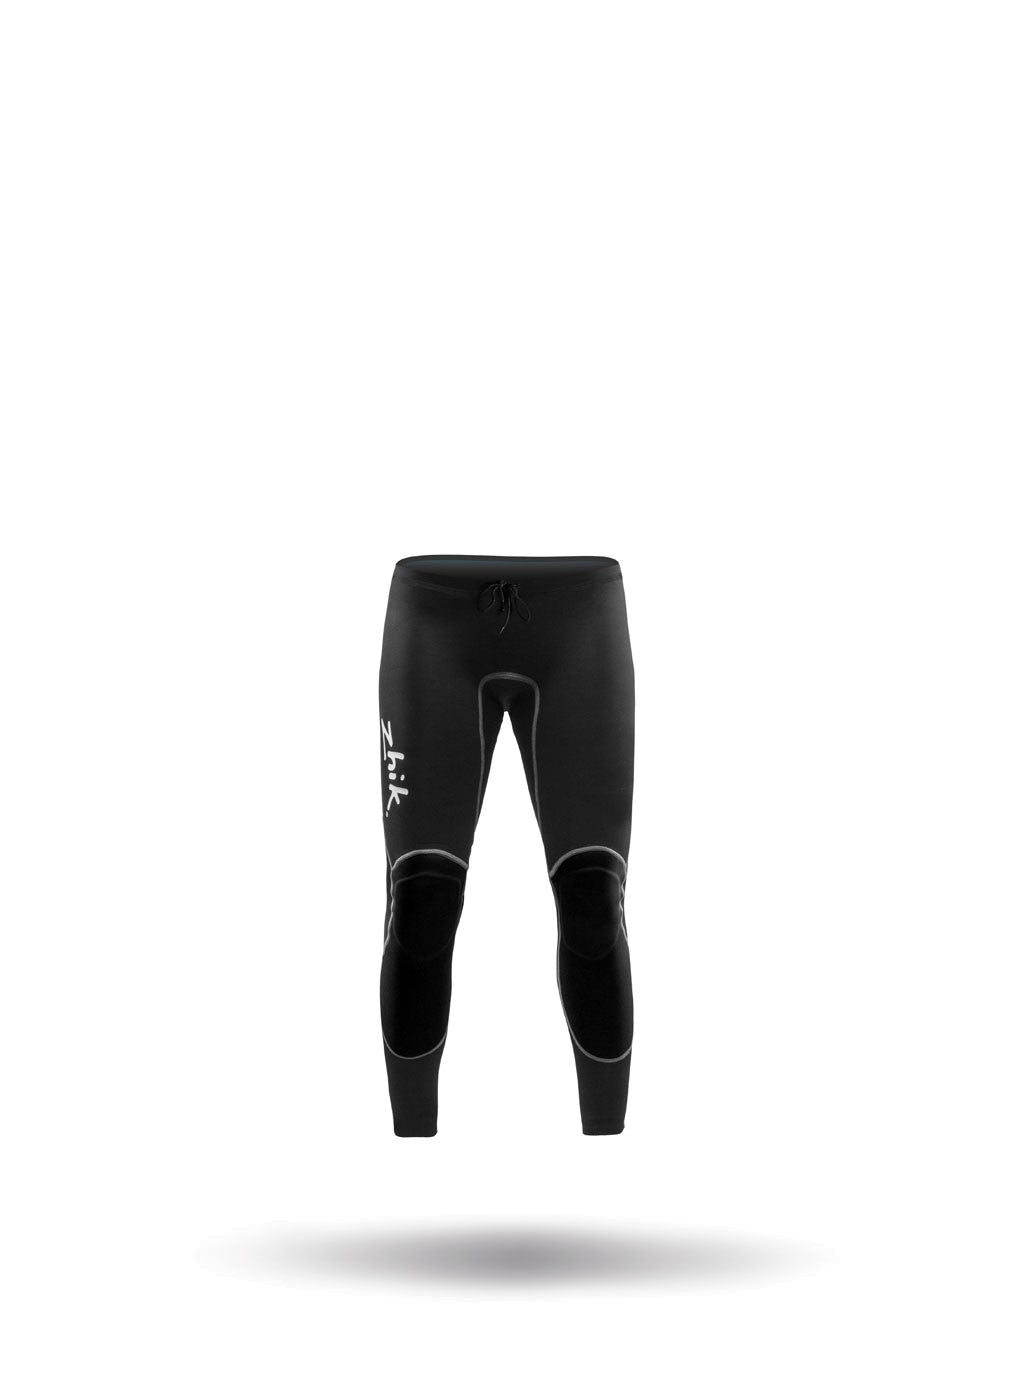 Pants, Spandex Neo, Junior - Zhik